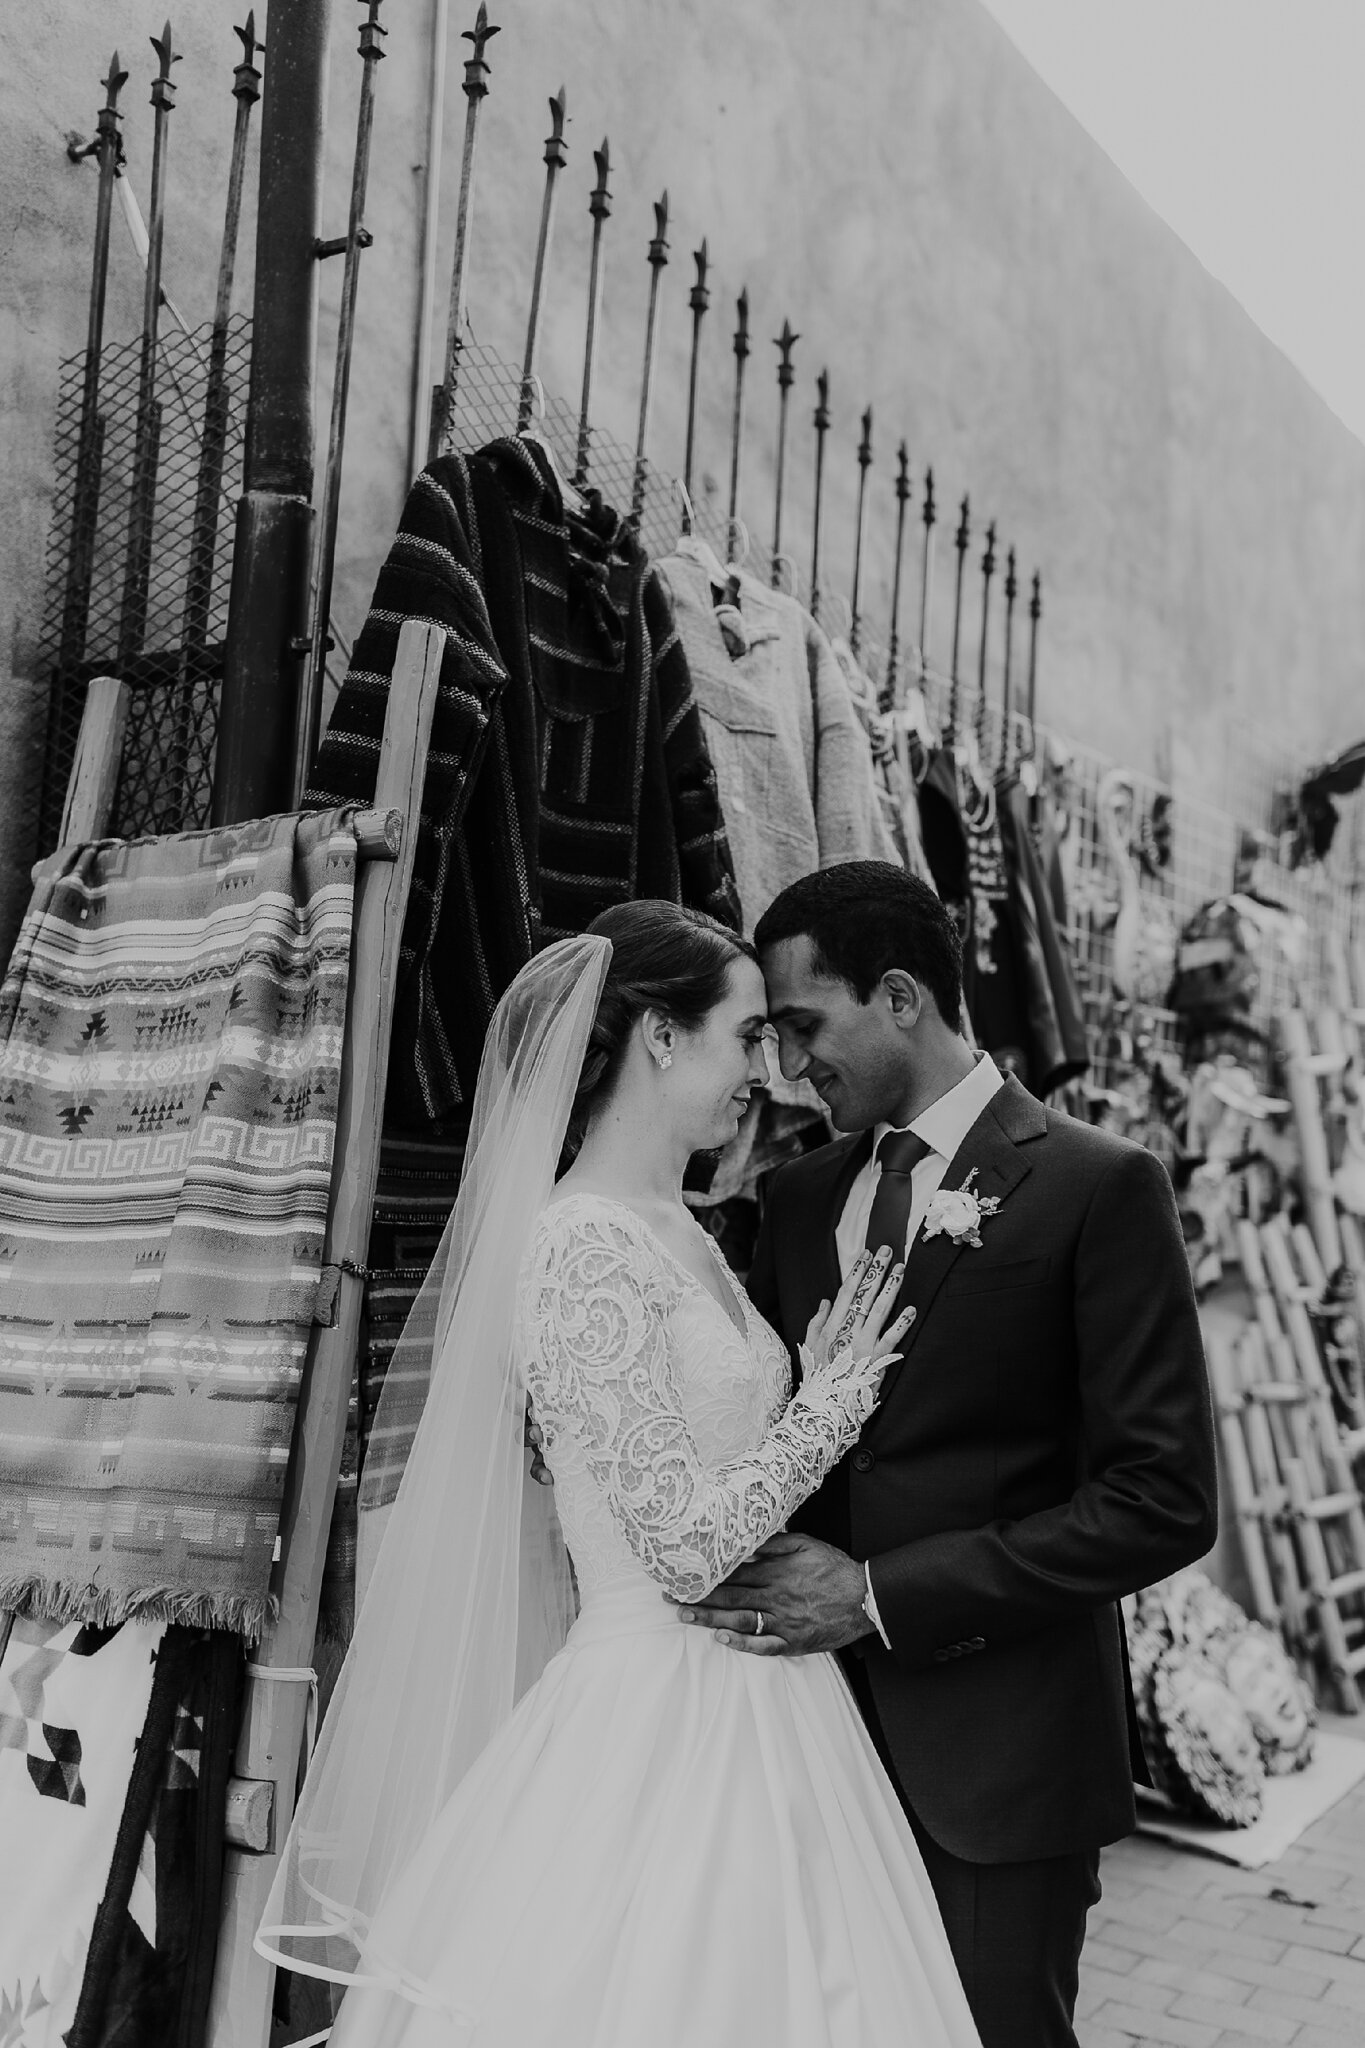 Alicia+lucia+photography+-+albuquerque+wedding+photographer+-+santa+fe+wedding+photography+-+new+mexico+wedding+photographer+-+new+mexico+wedding+-+hindu+wedding+-+catholic+wedding+-+multicultural+wedding+-+santa+fe+wedding_0060.jpg